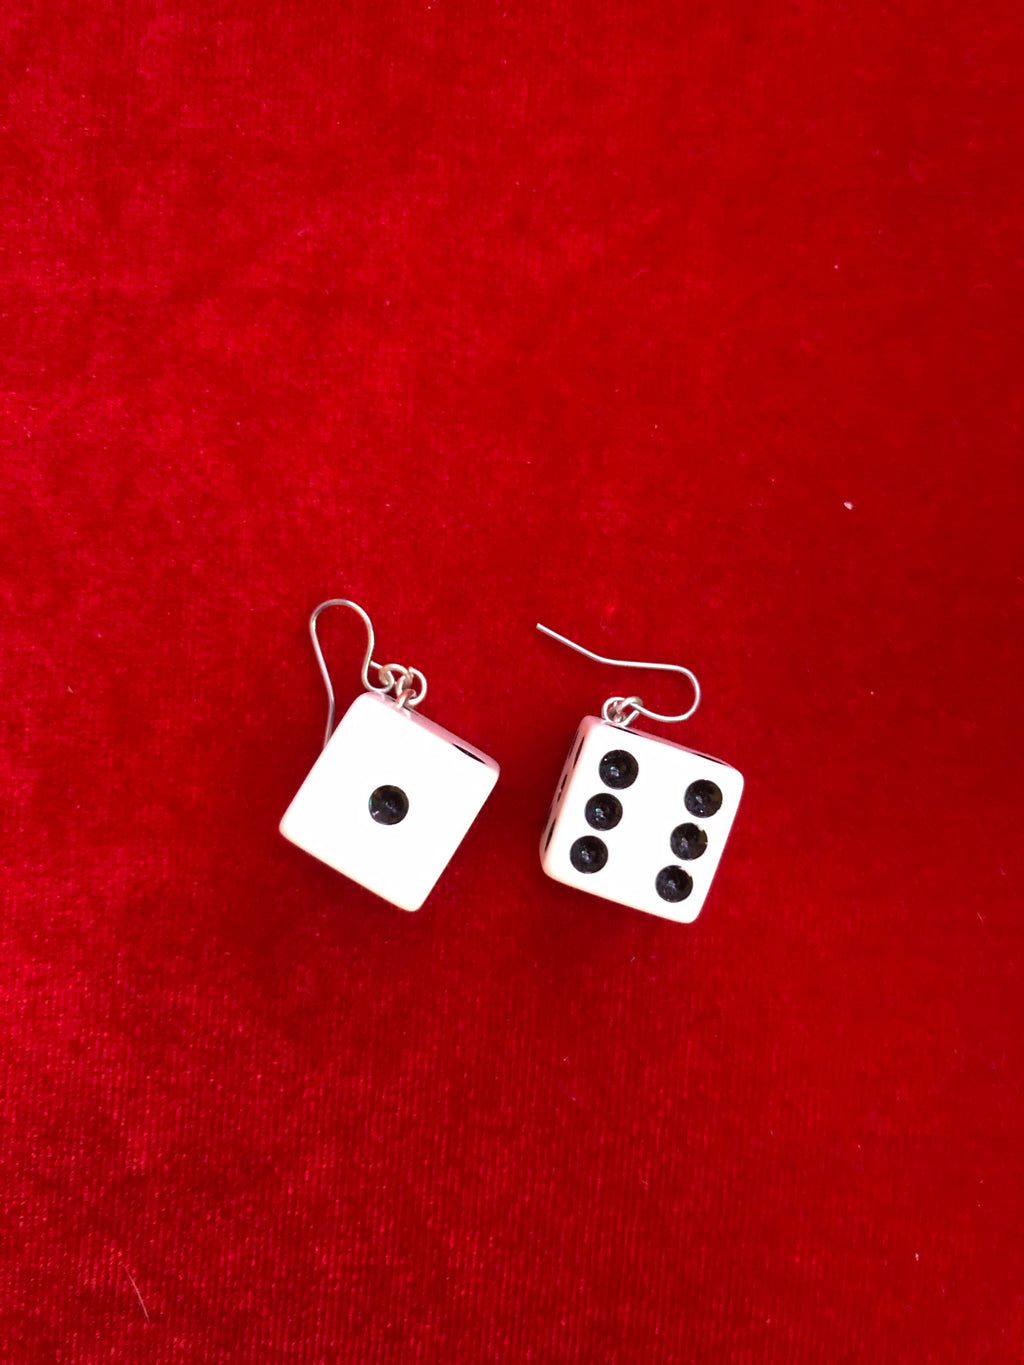 Vintage Dice Earring Set - White